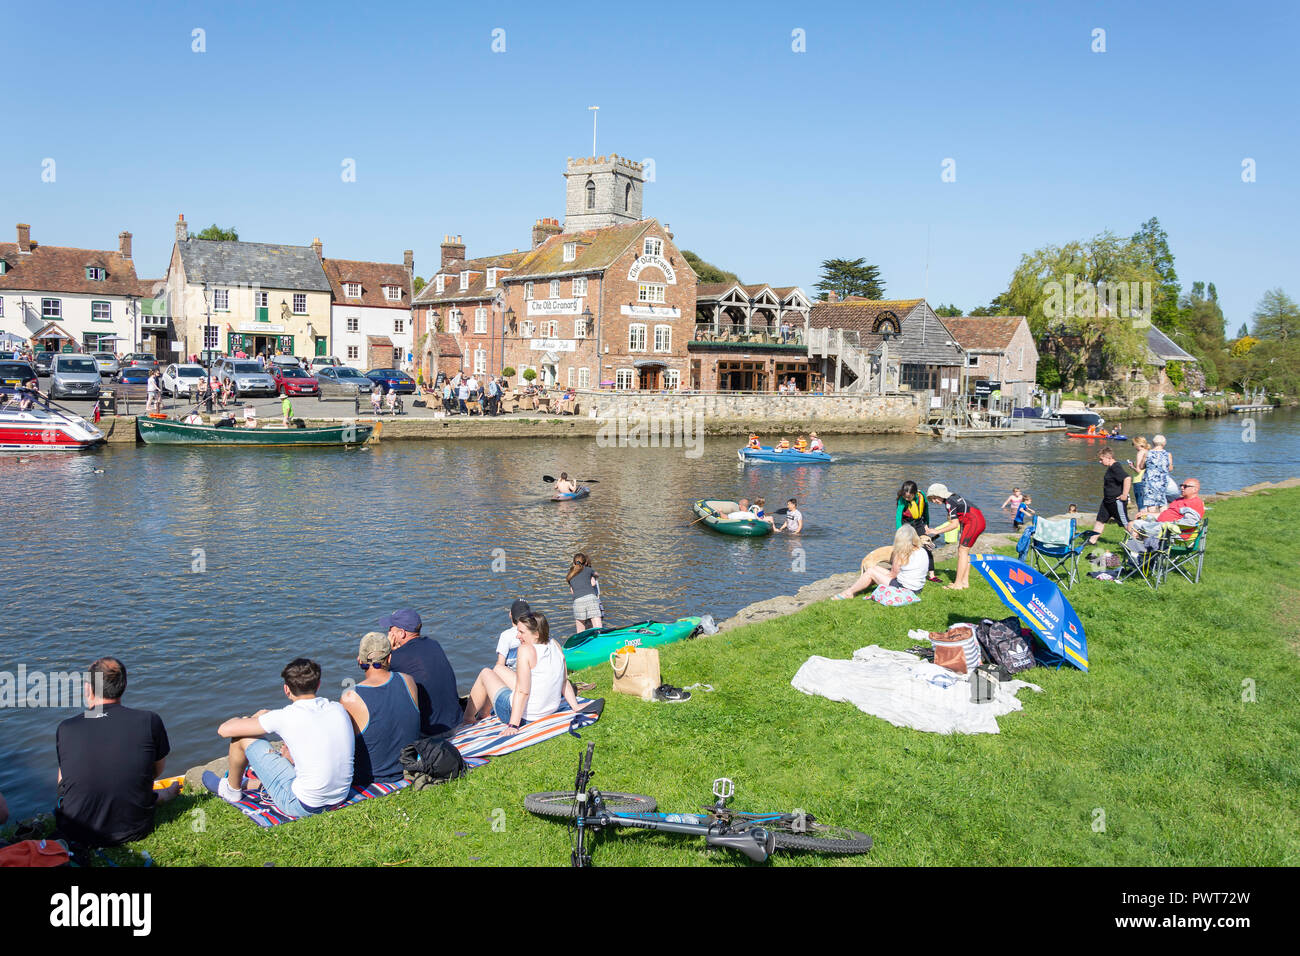 Families relaxing by Frome River, Wareham Quay, Wareham, Dorset, England, United Kingdom - Stock Image